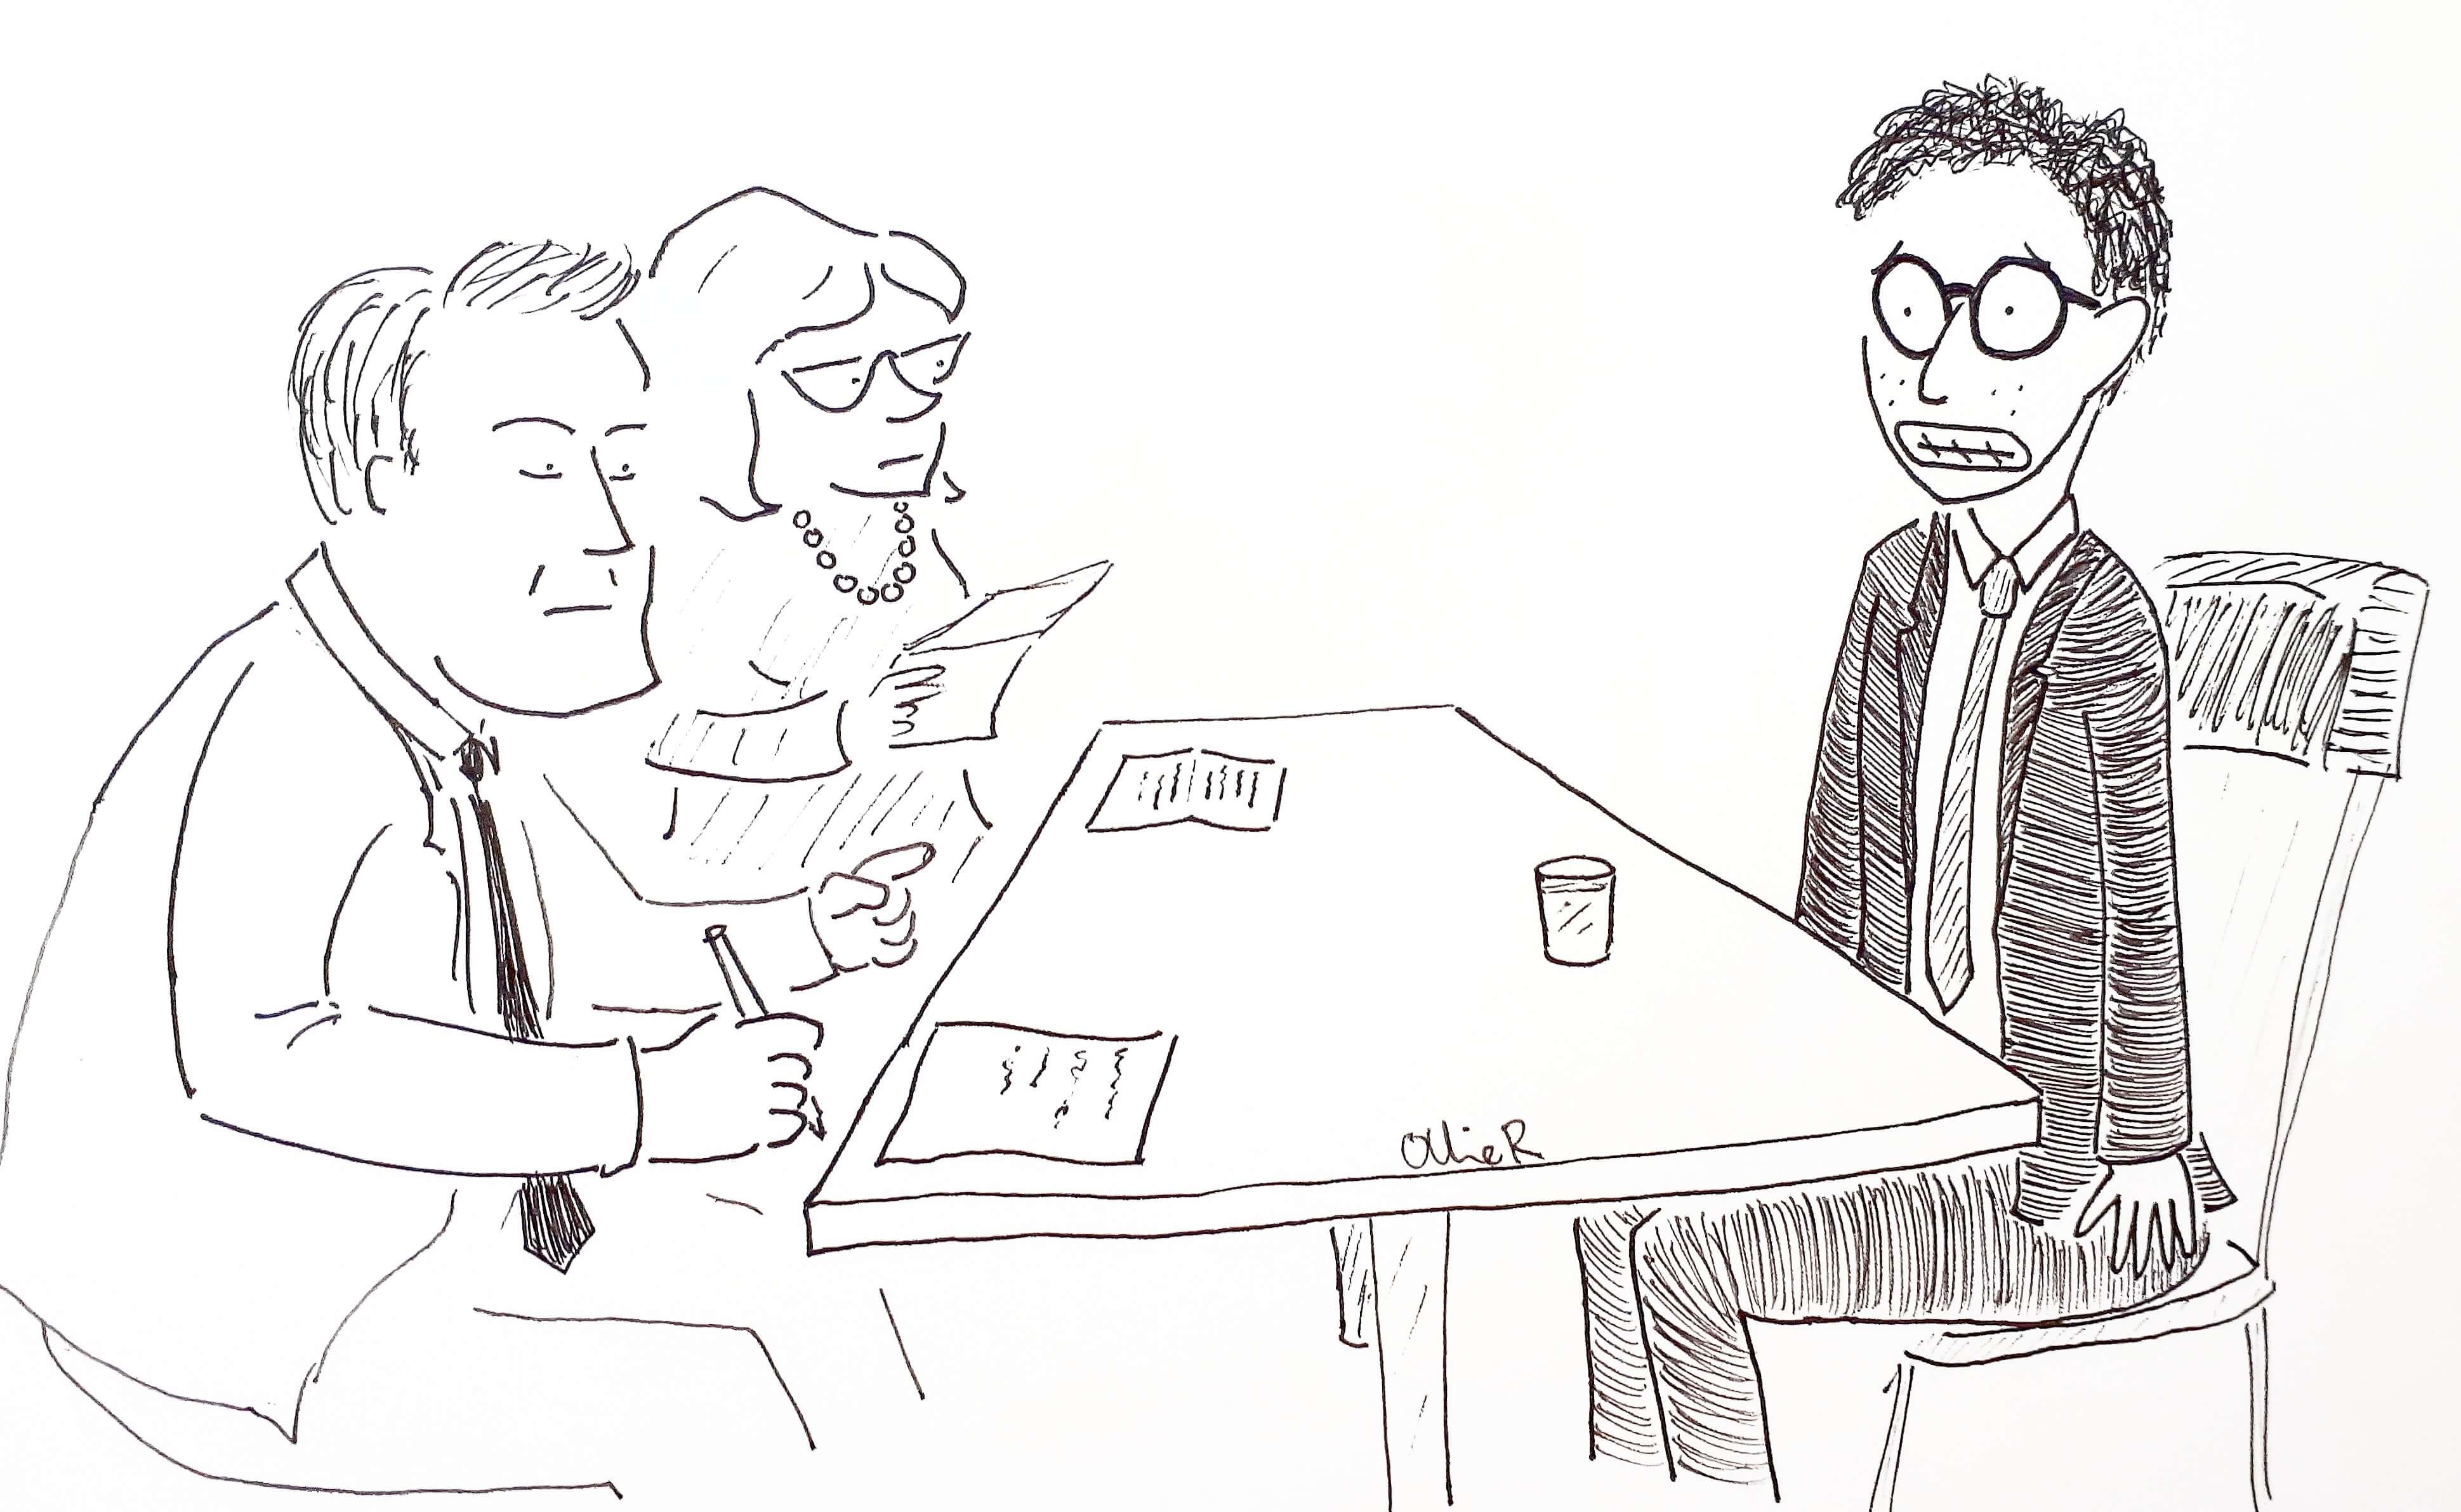 Cartoon of nerd in his early twenties at his first job interview